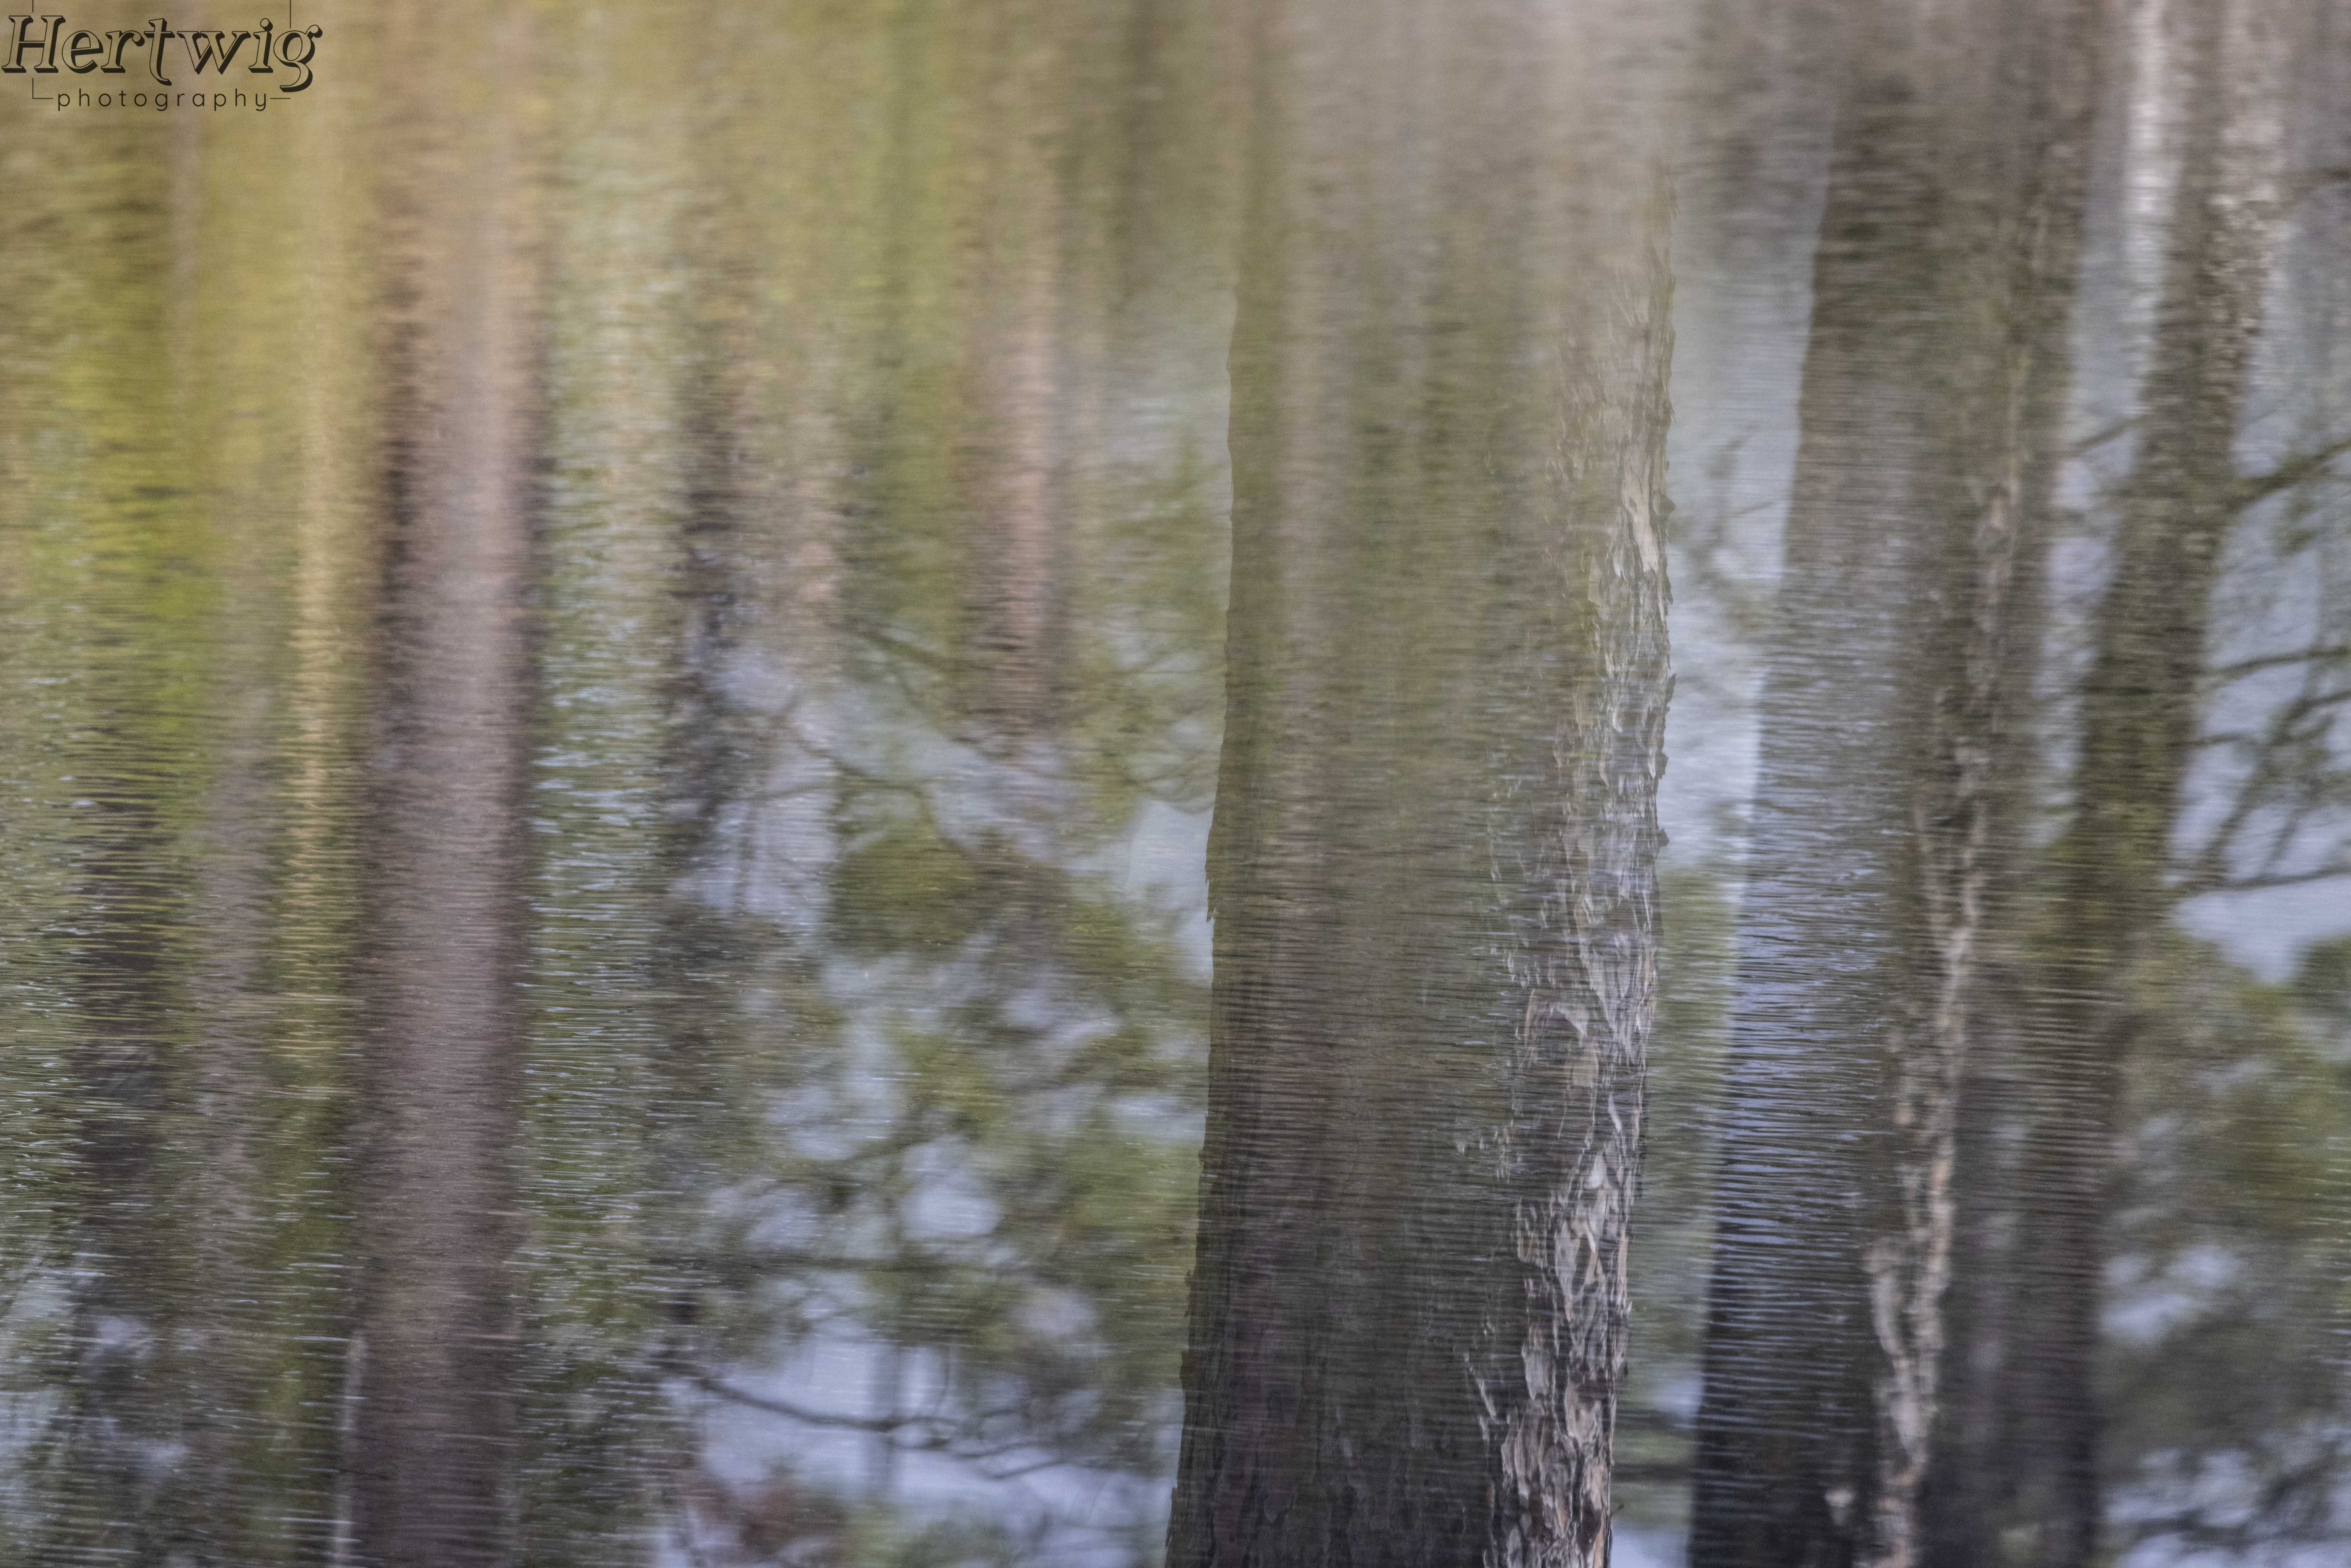 Pining for Reflections